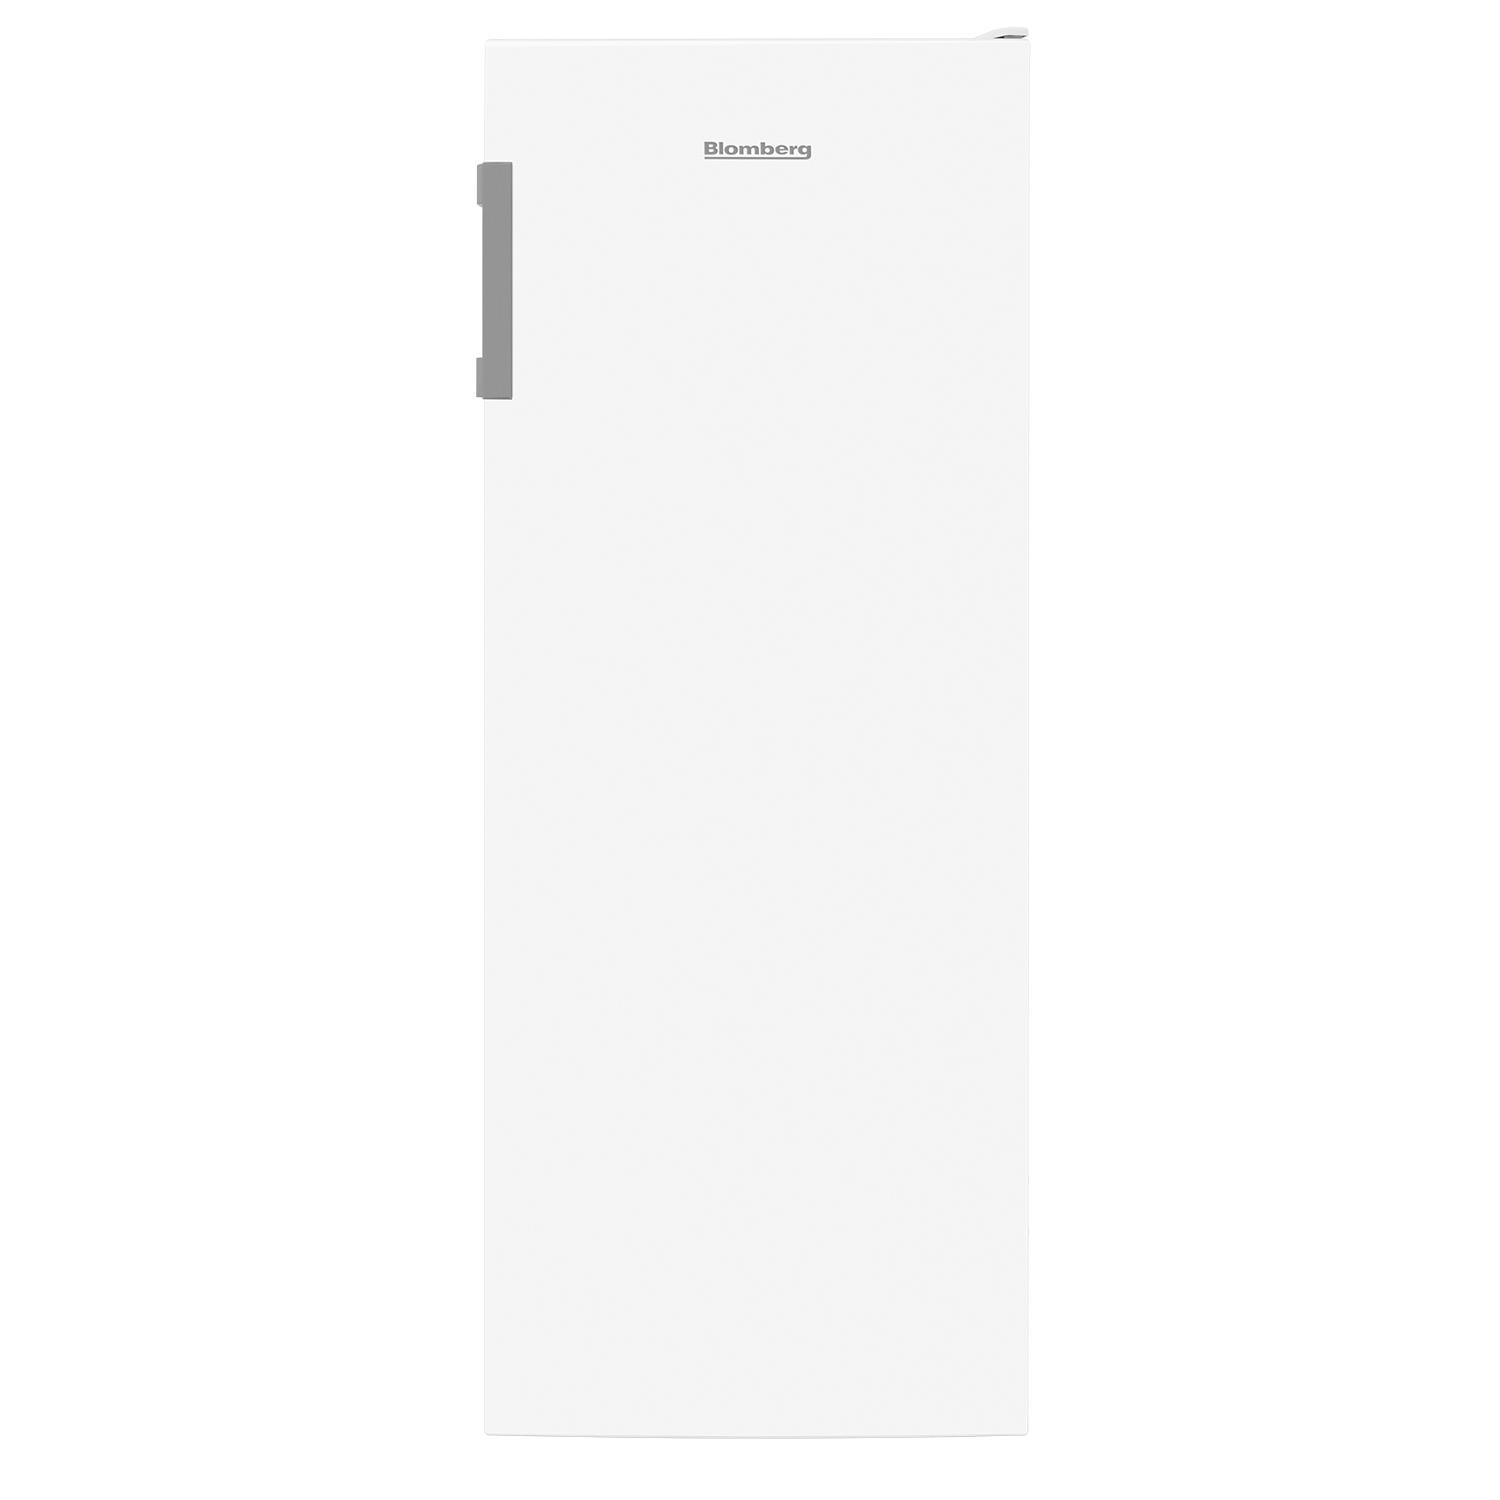 Blomberg SSM4543 54cm Tall Larder Fridge - White - 0